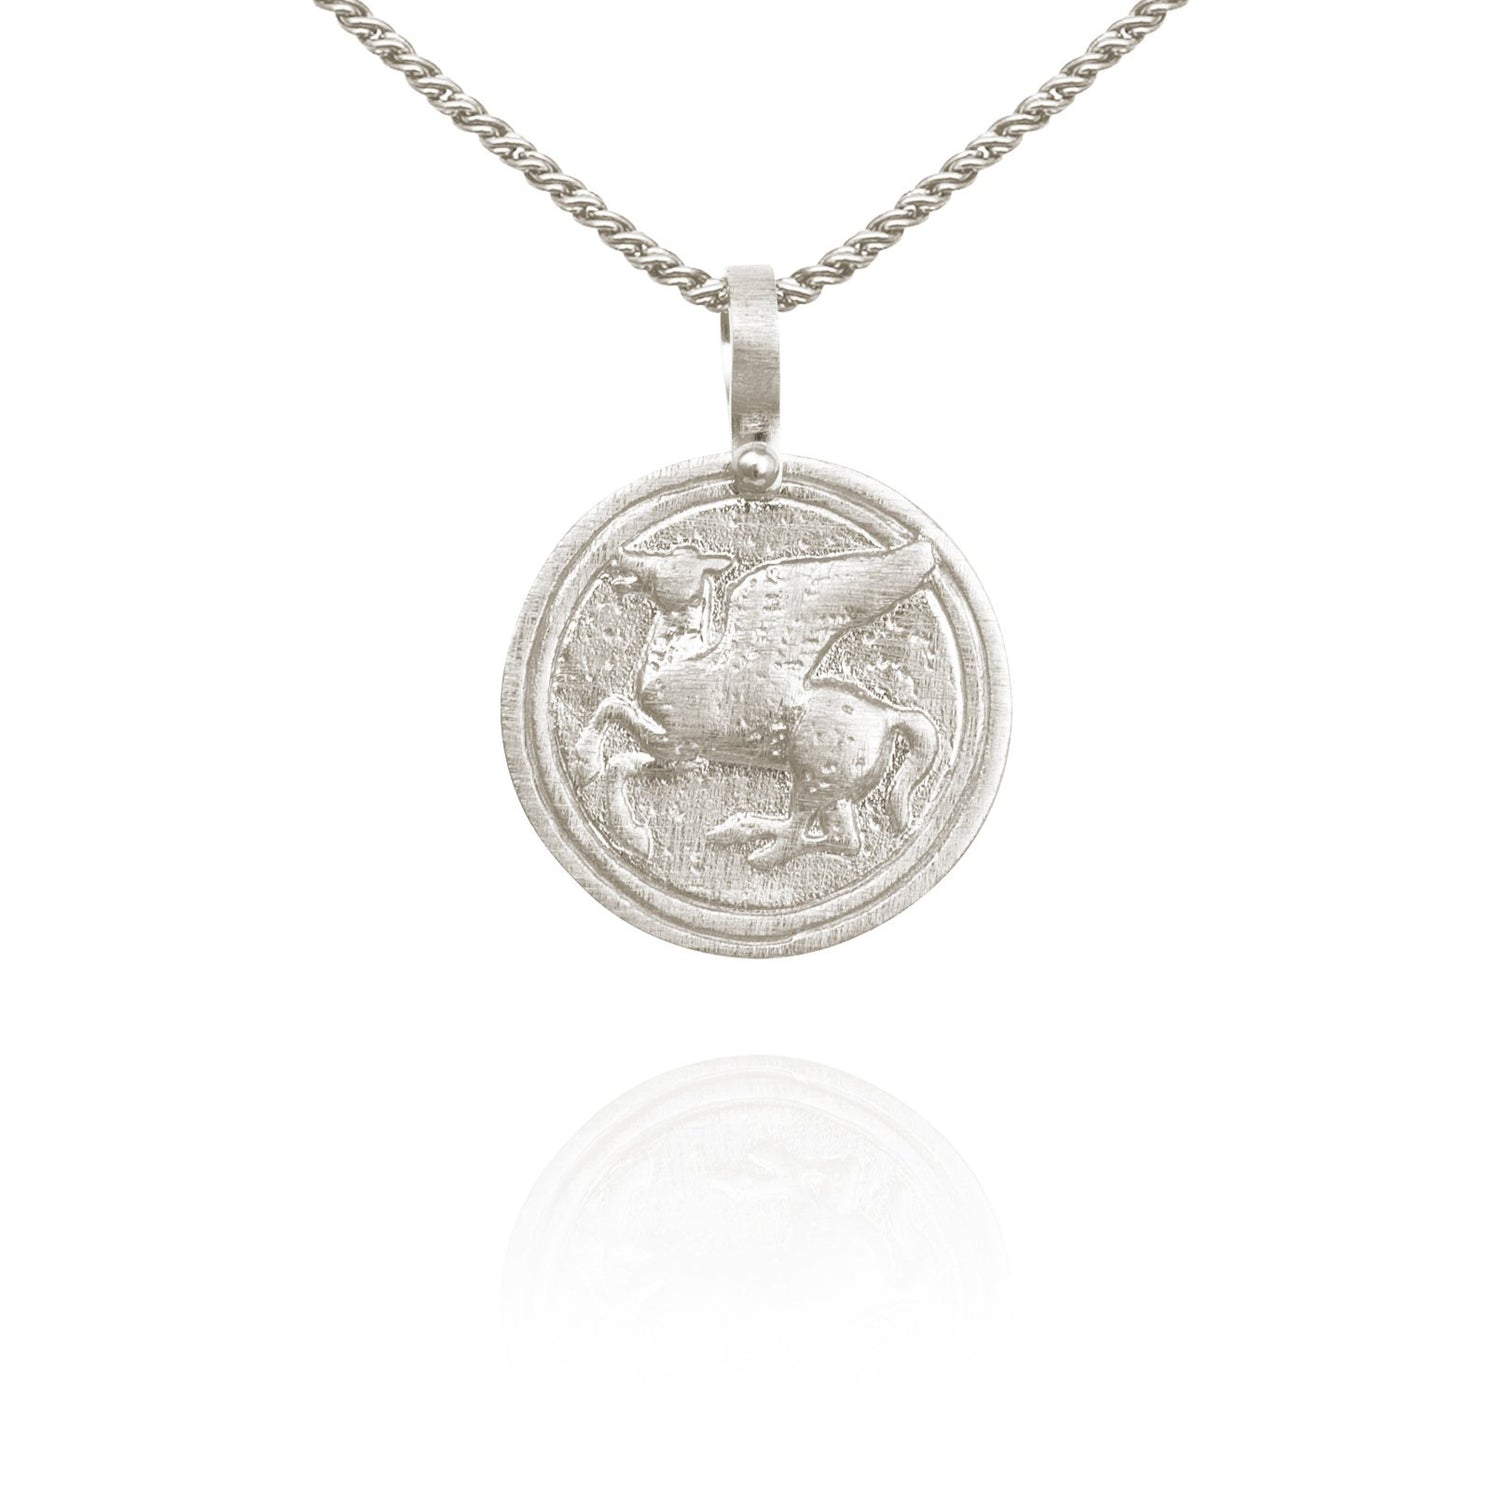 Temple of the Sun Pegasus Coin Necklace Silver - The Artisan Storeroom